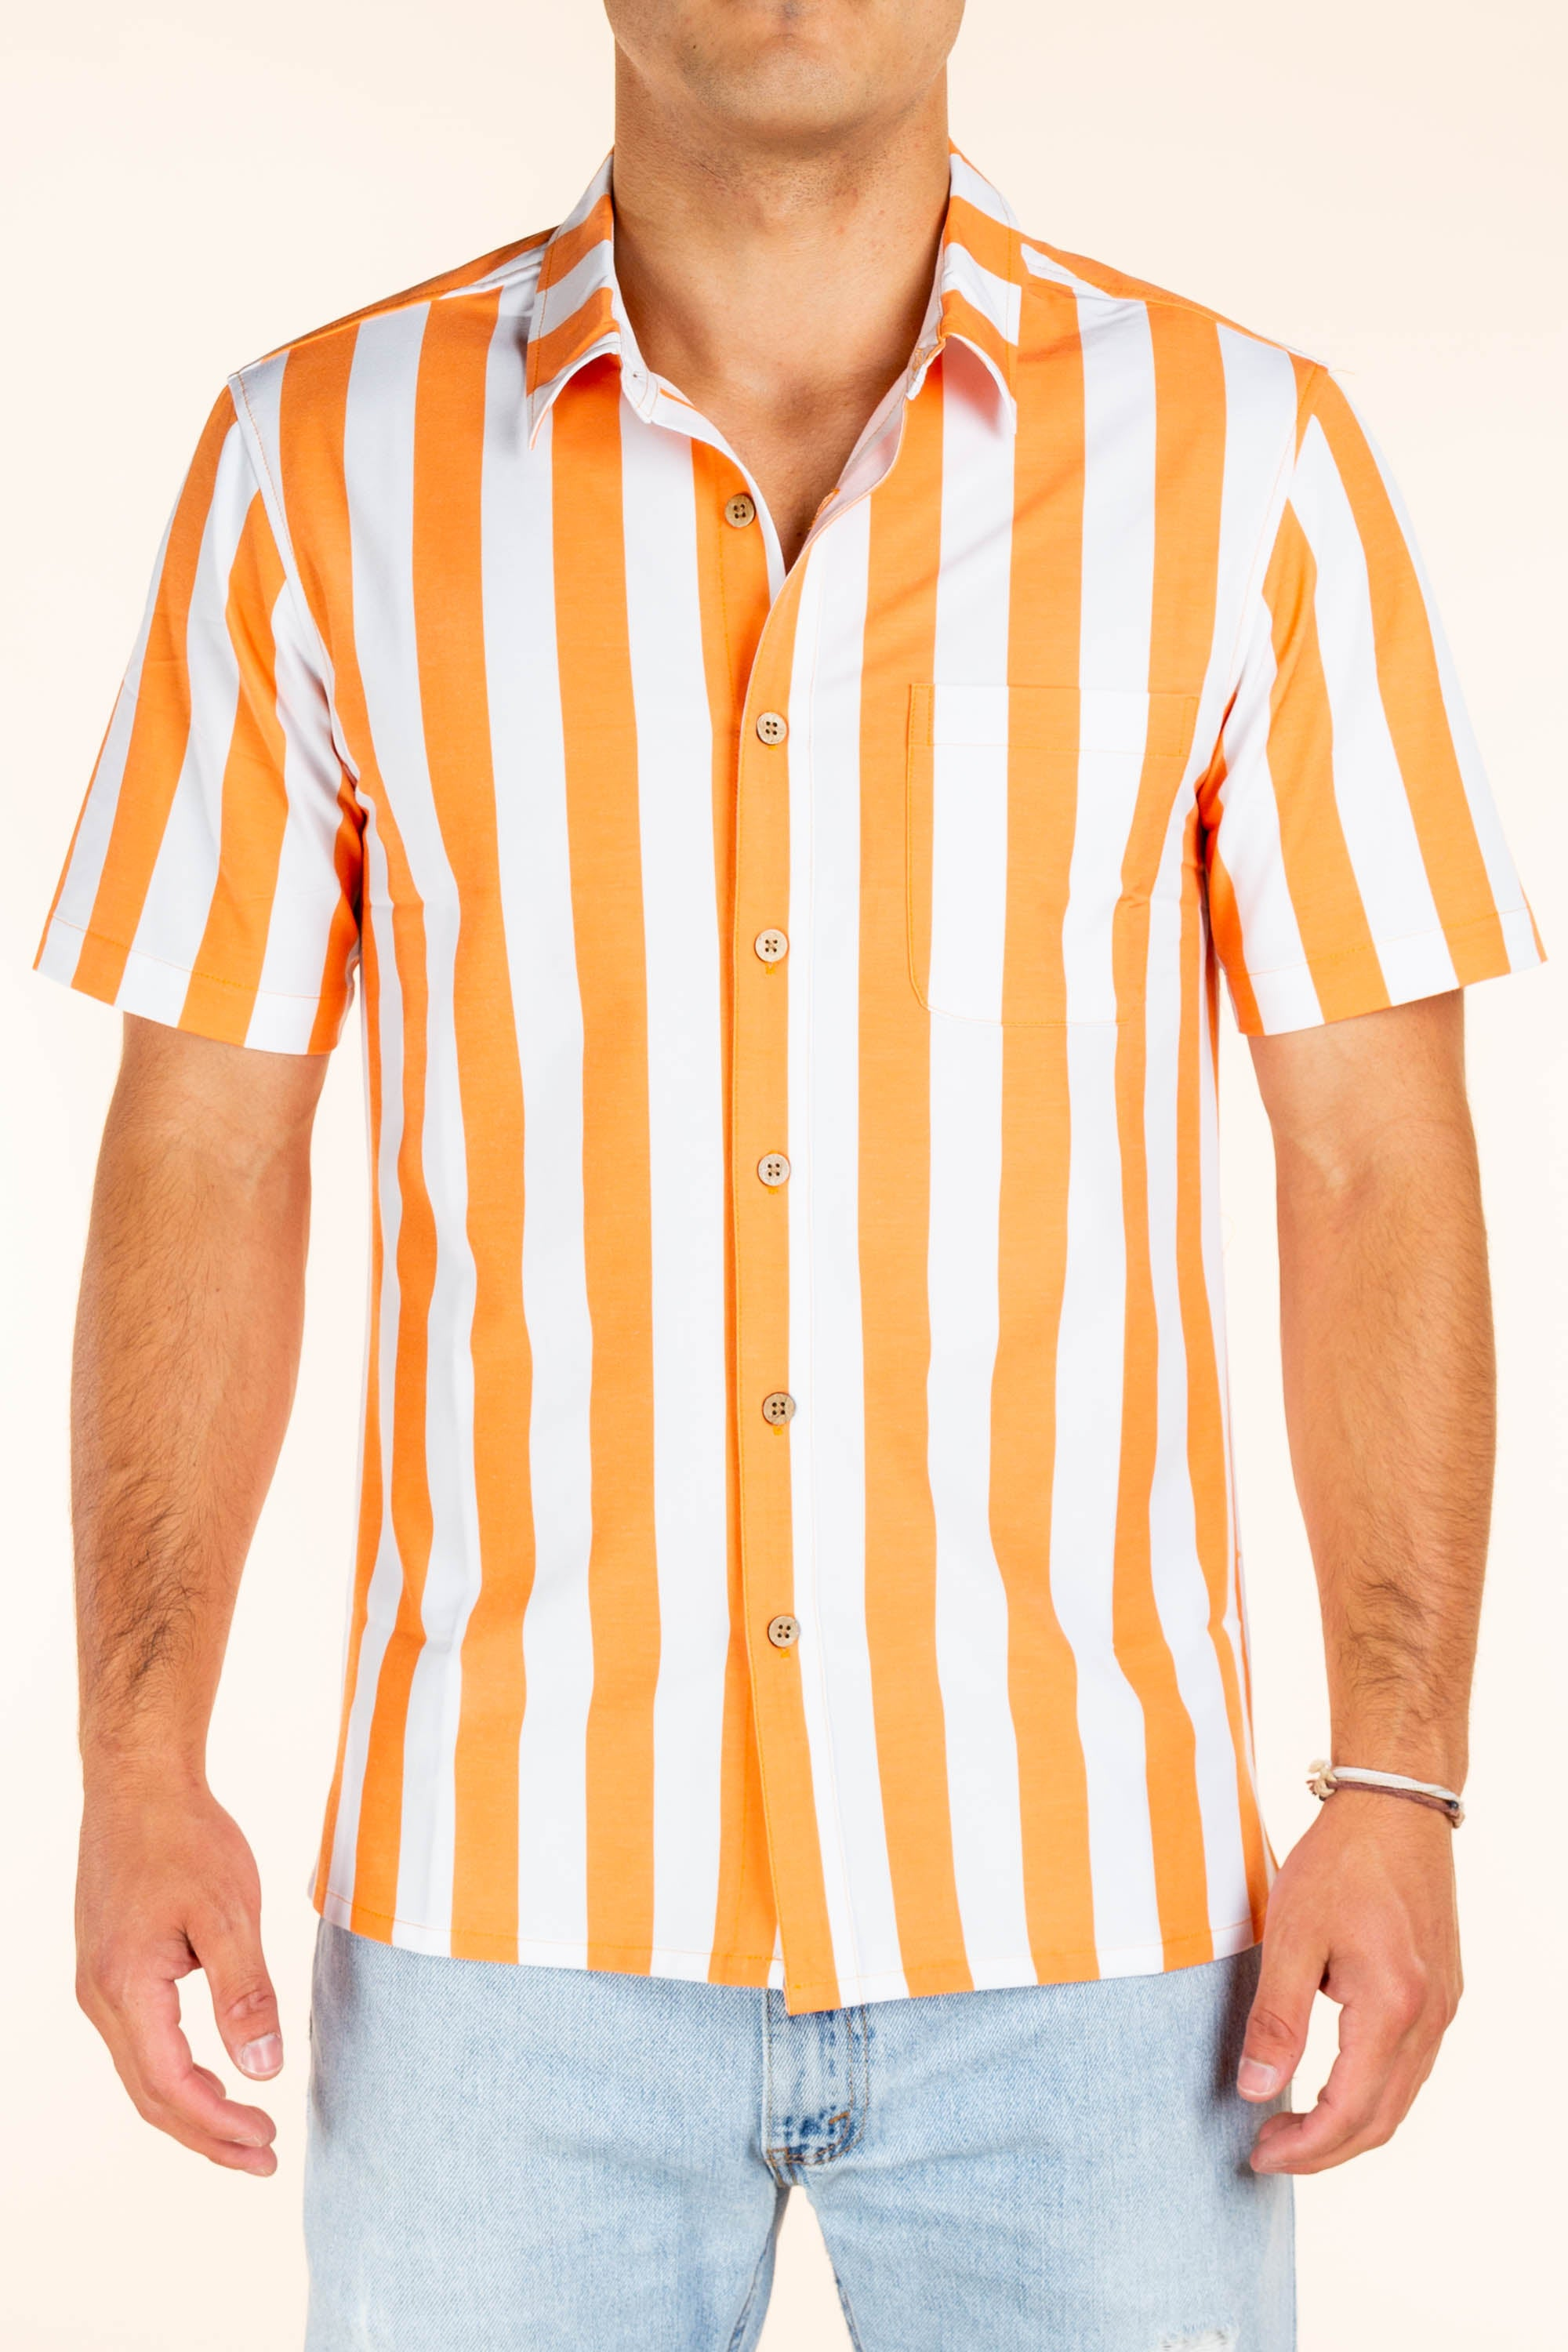 University of Tennessee Striped Tailgating Shirt